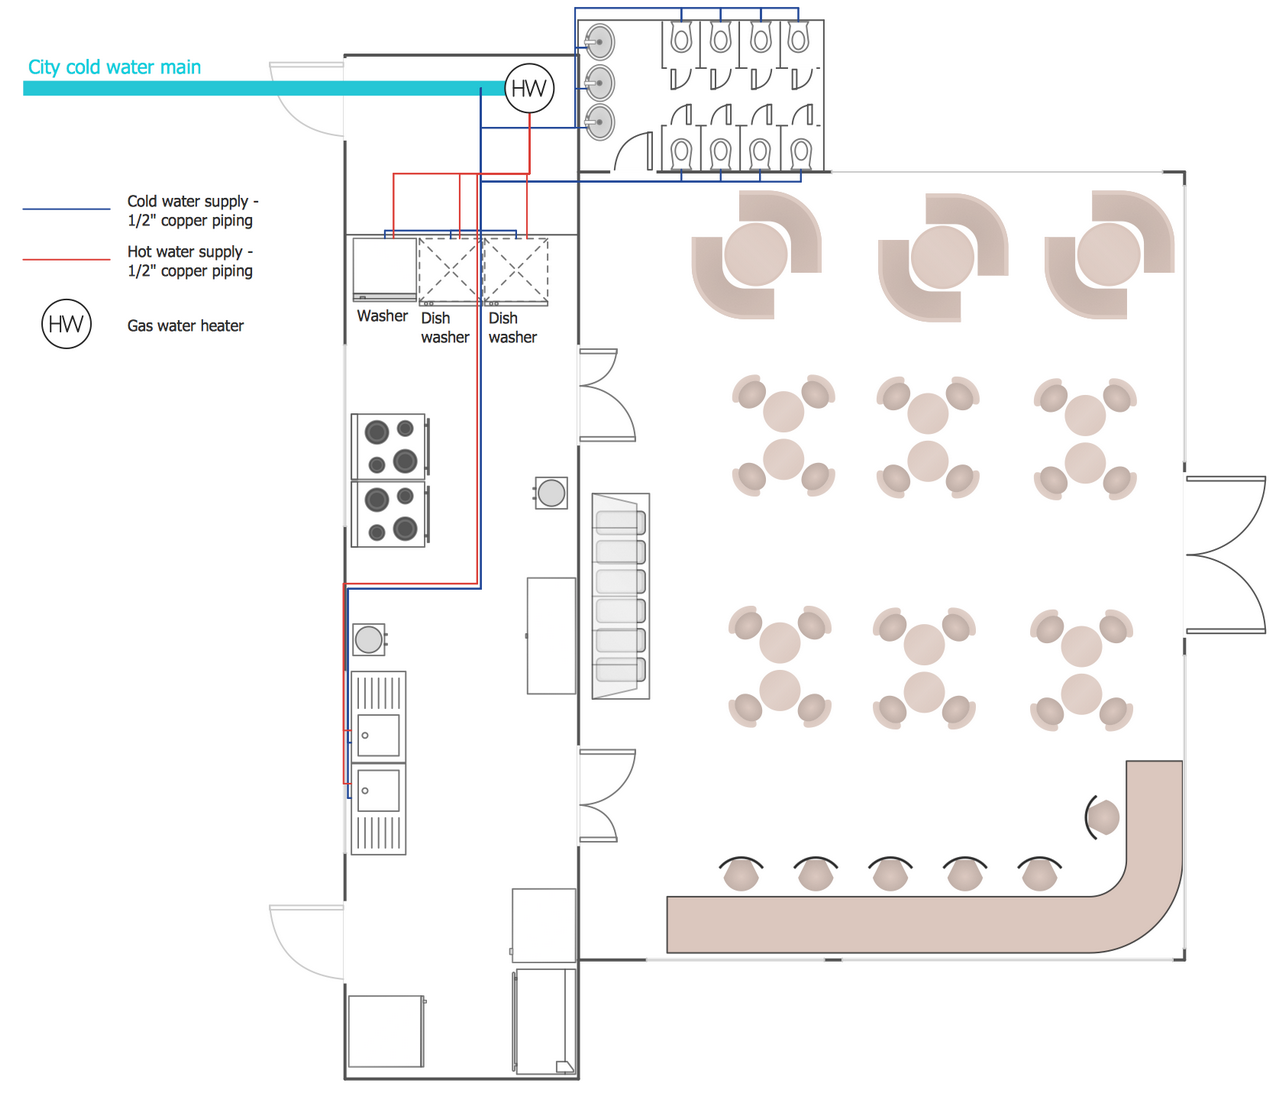 Plumbing and Piping Plans Solution.